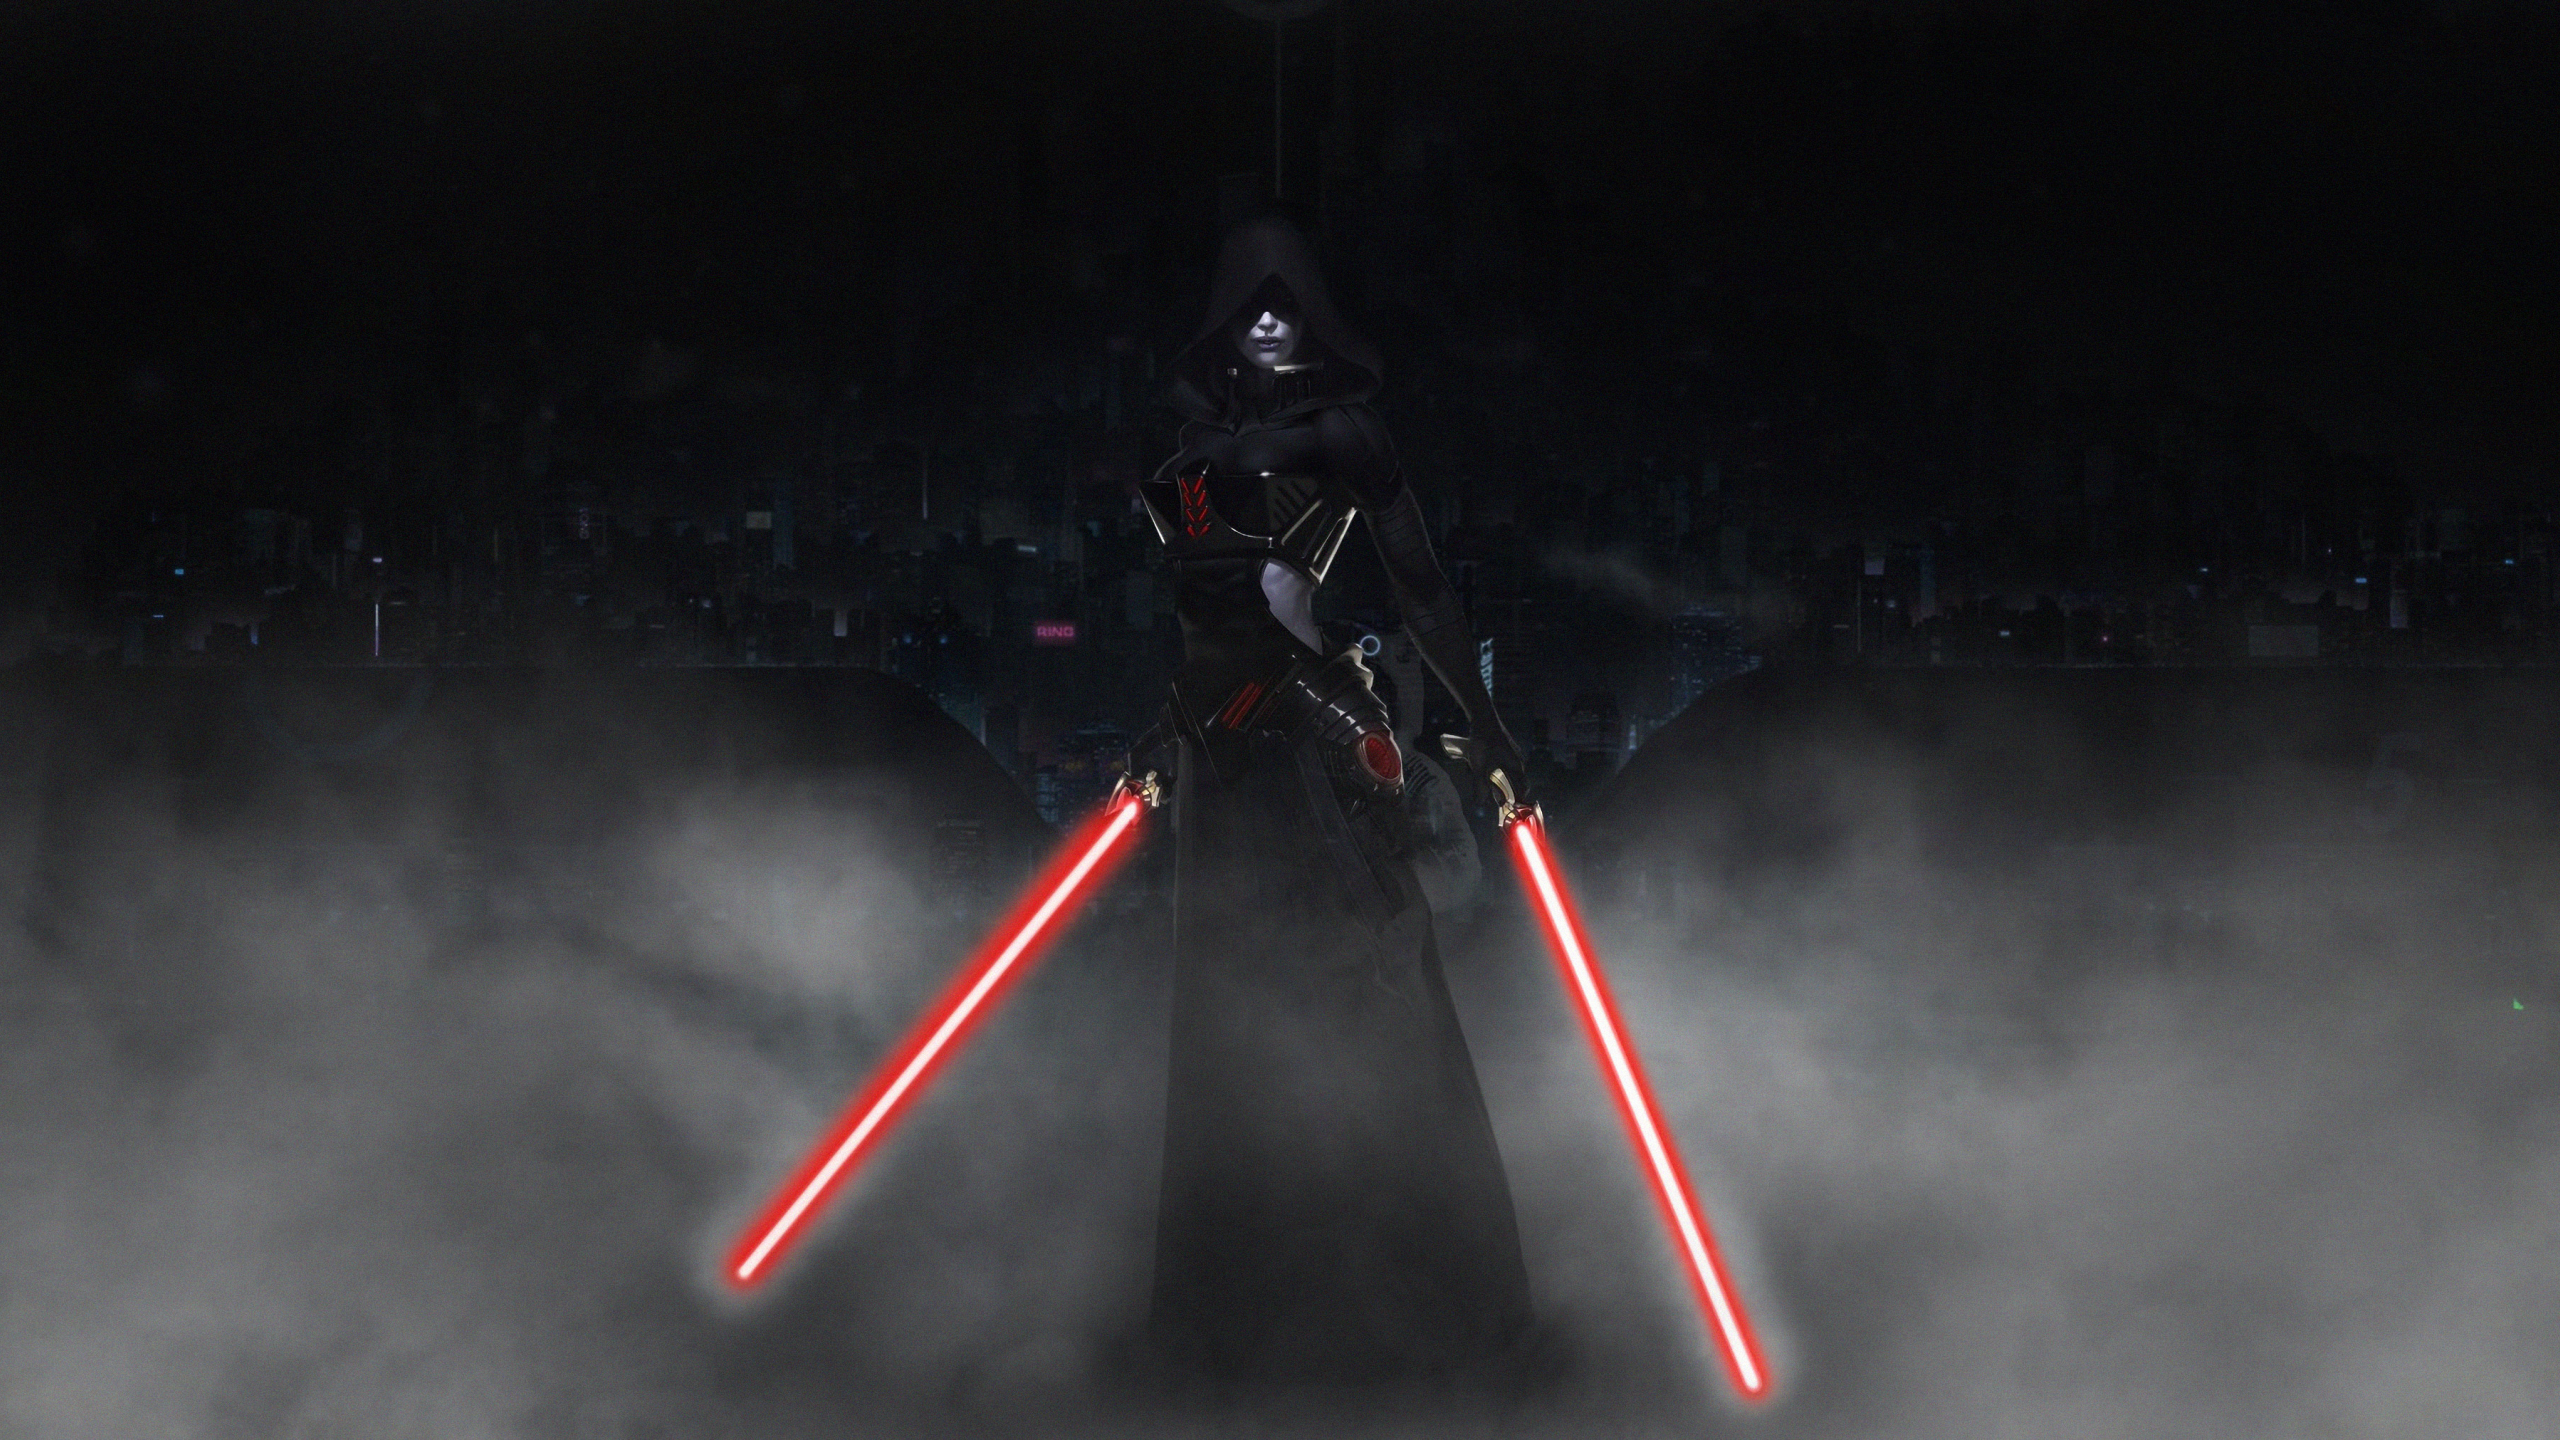 2560x1440 Sith With Lightsaber 1440p Resolution Wallpaper Hd